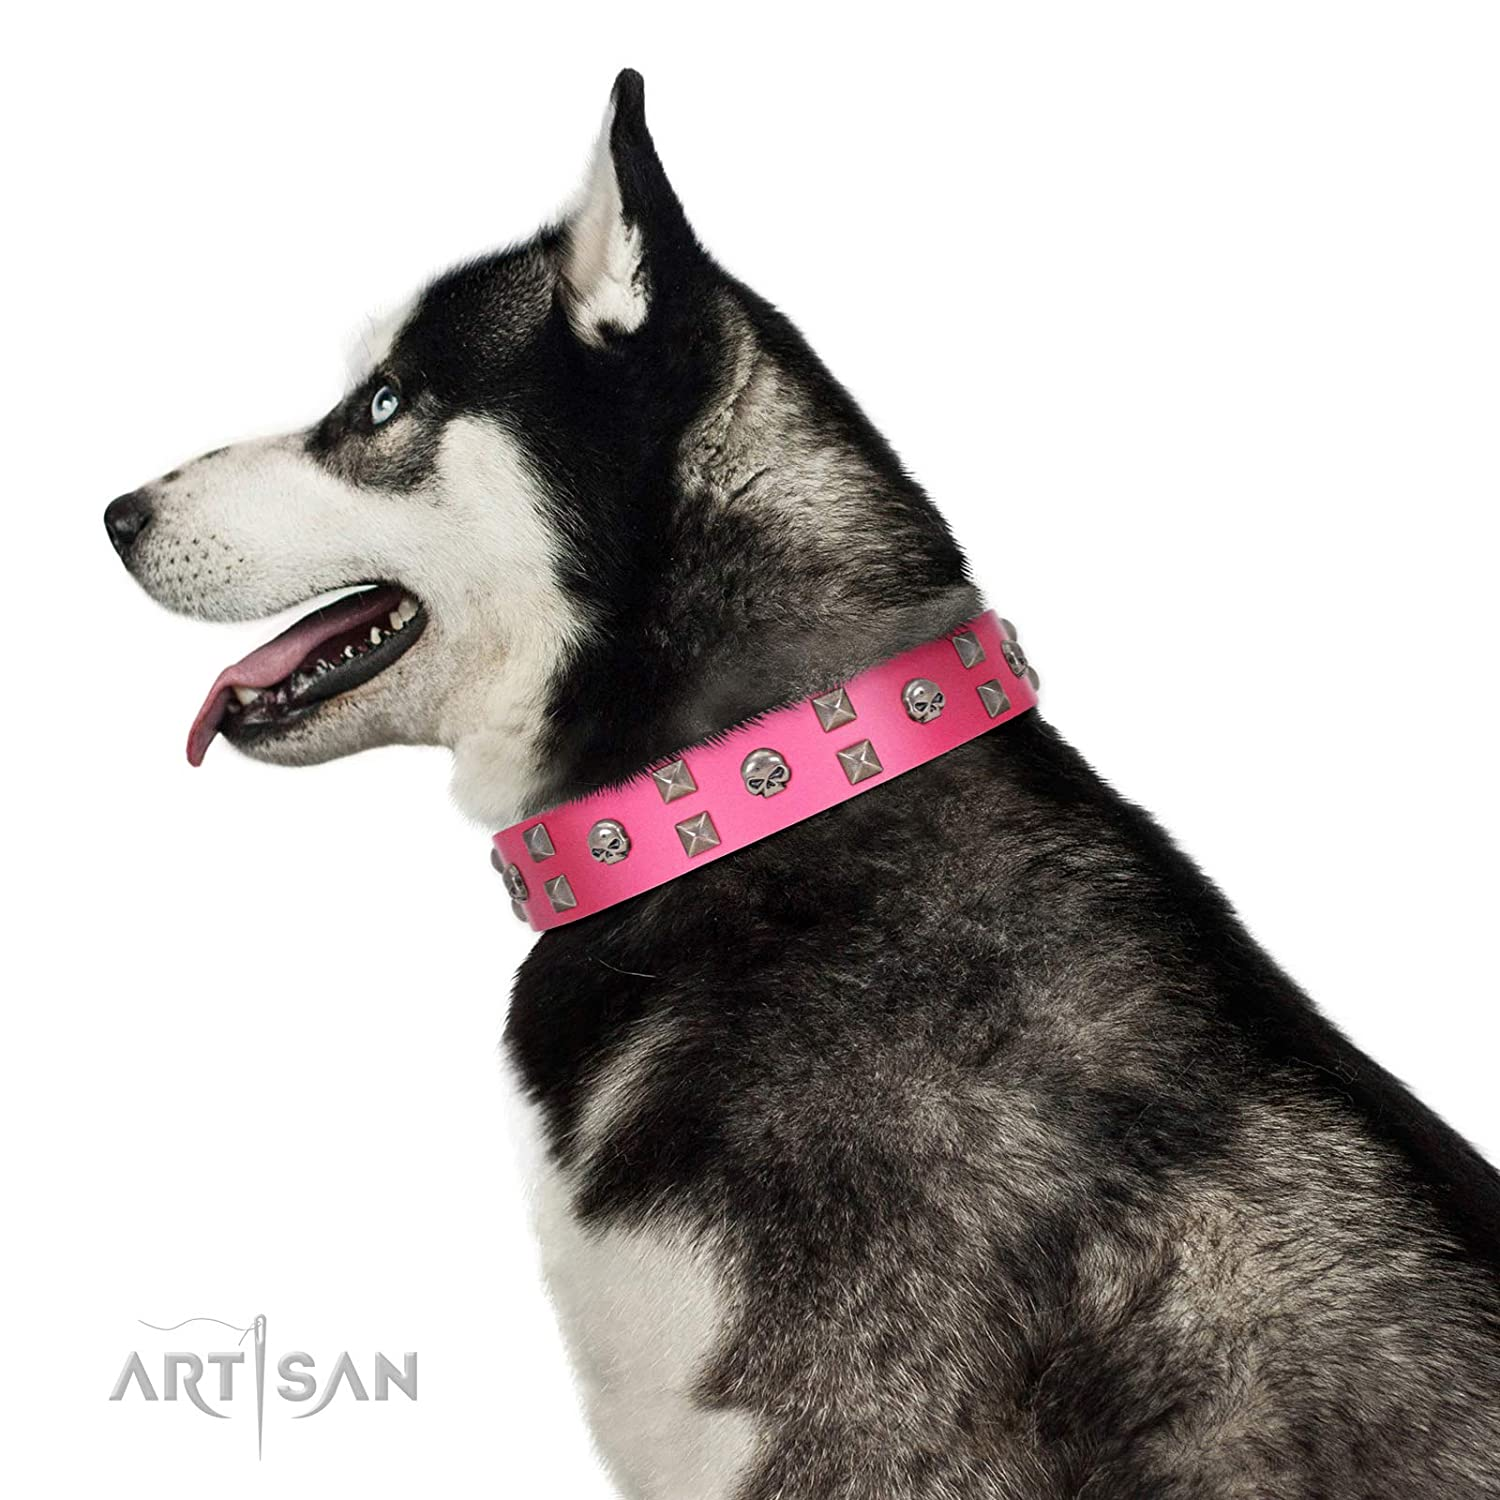 Fits for 35 inch (88cm) dog's neck size FDT Artisan 35 inch Designer Handmade Pink Leather Dog Collar Crystal Skulls 1 1 2 inch (40 mm) Wide Gift Box Included